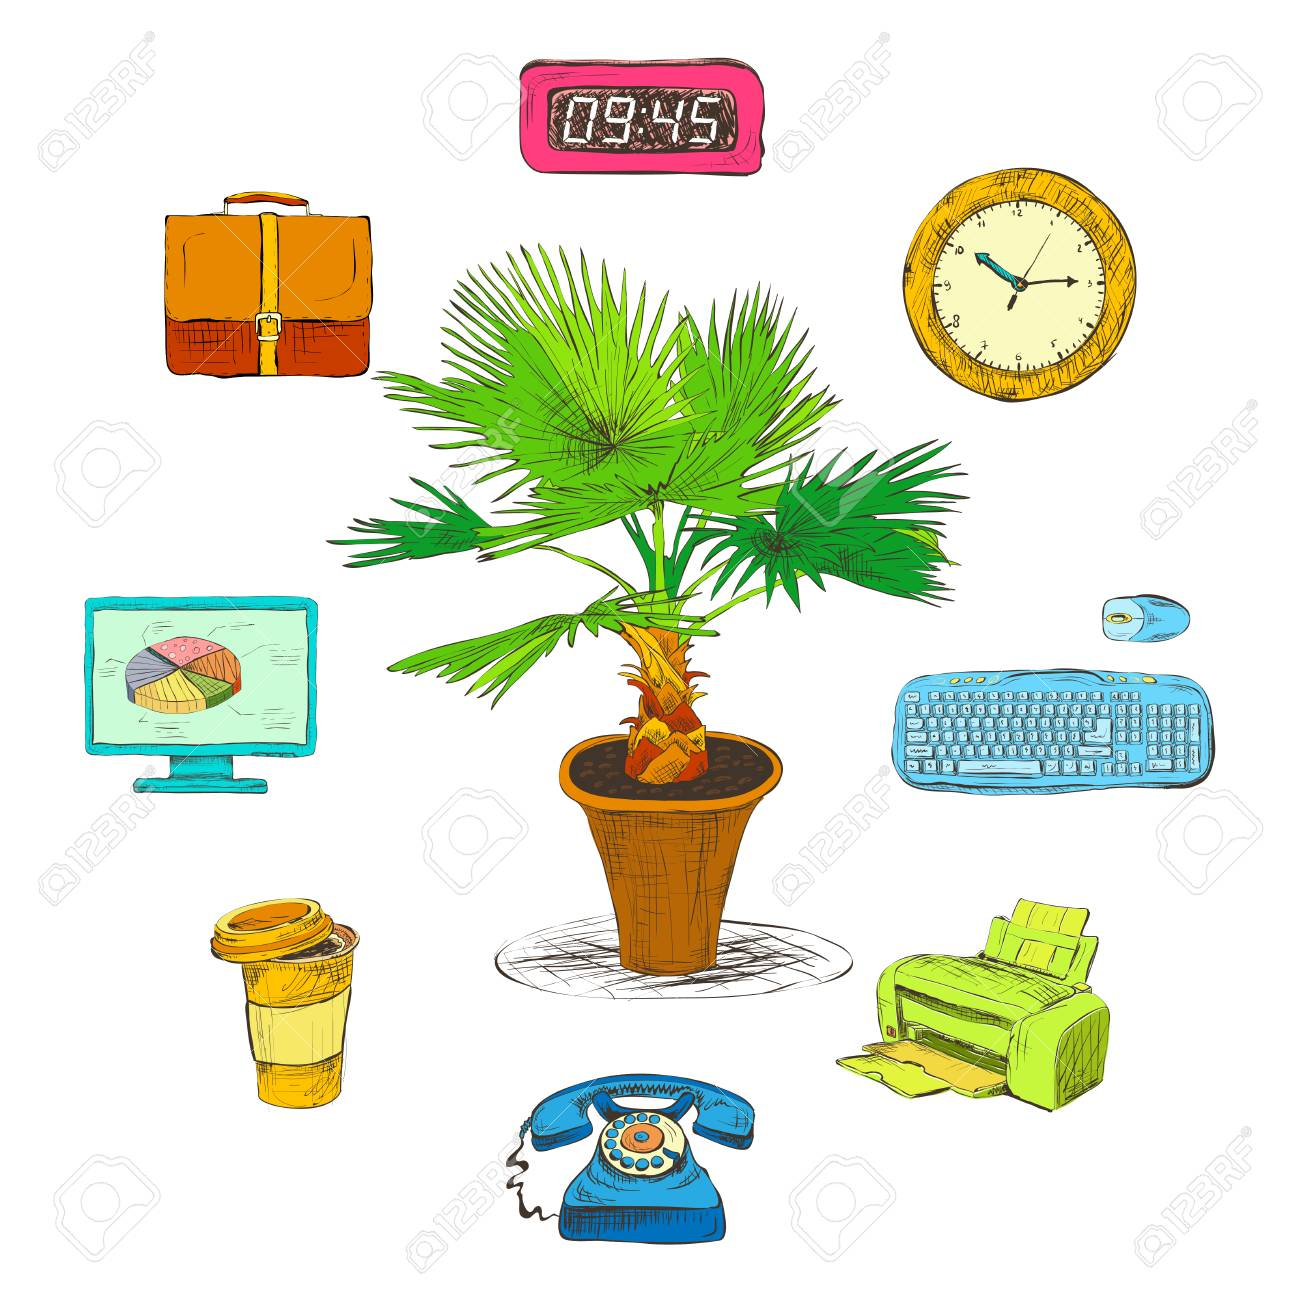 decorative office supplies. Business Office Stationery Supplies Icons Set With Decorative Desktop Dracaena Palm Isolated Sketch Illustration Stock Vector O